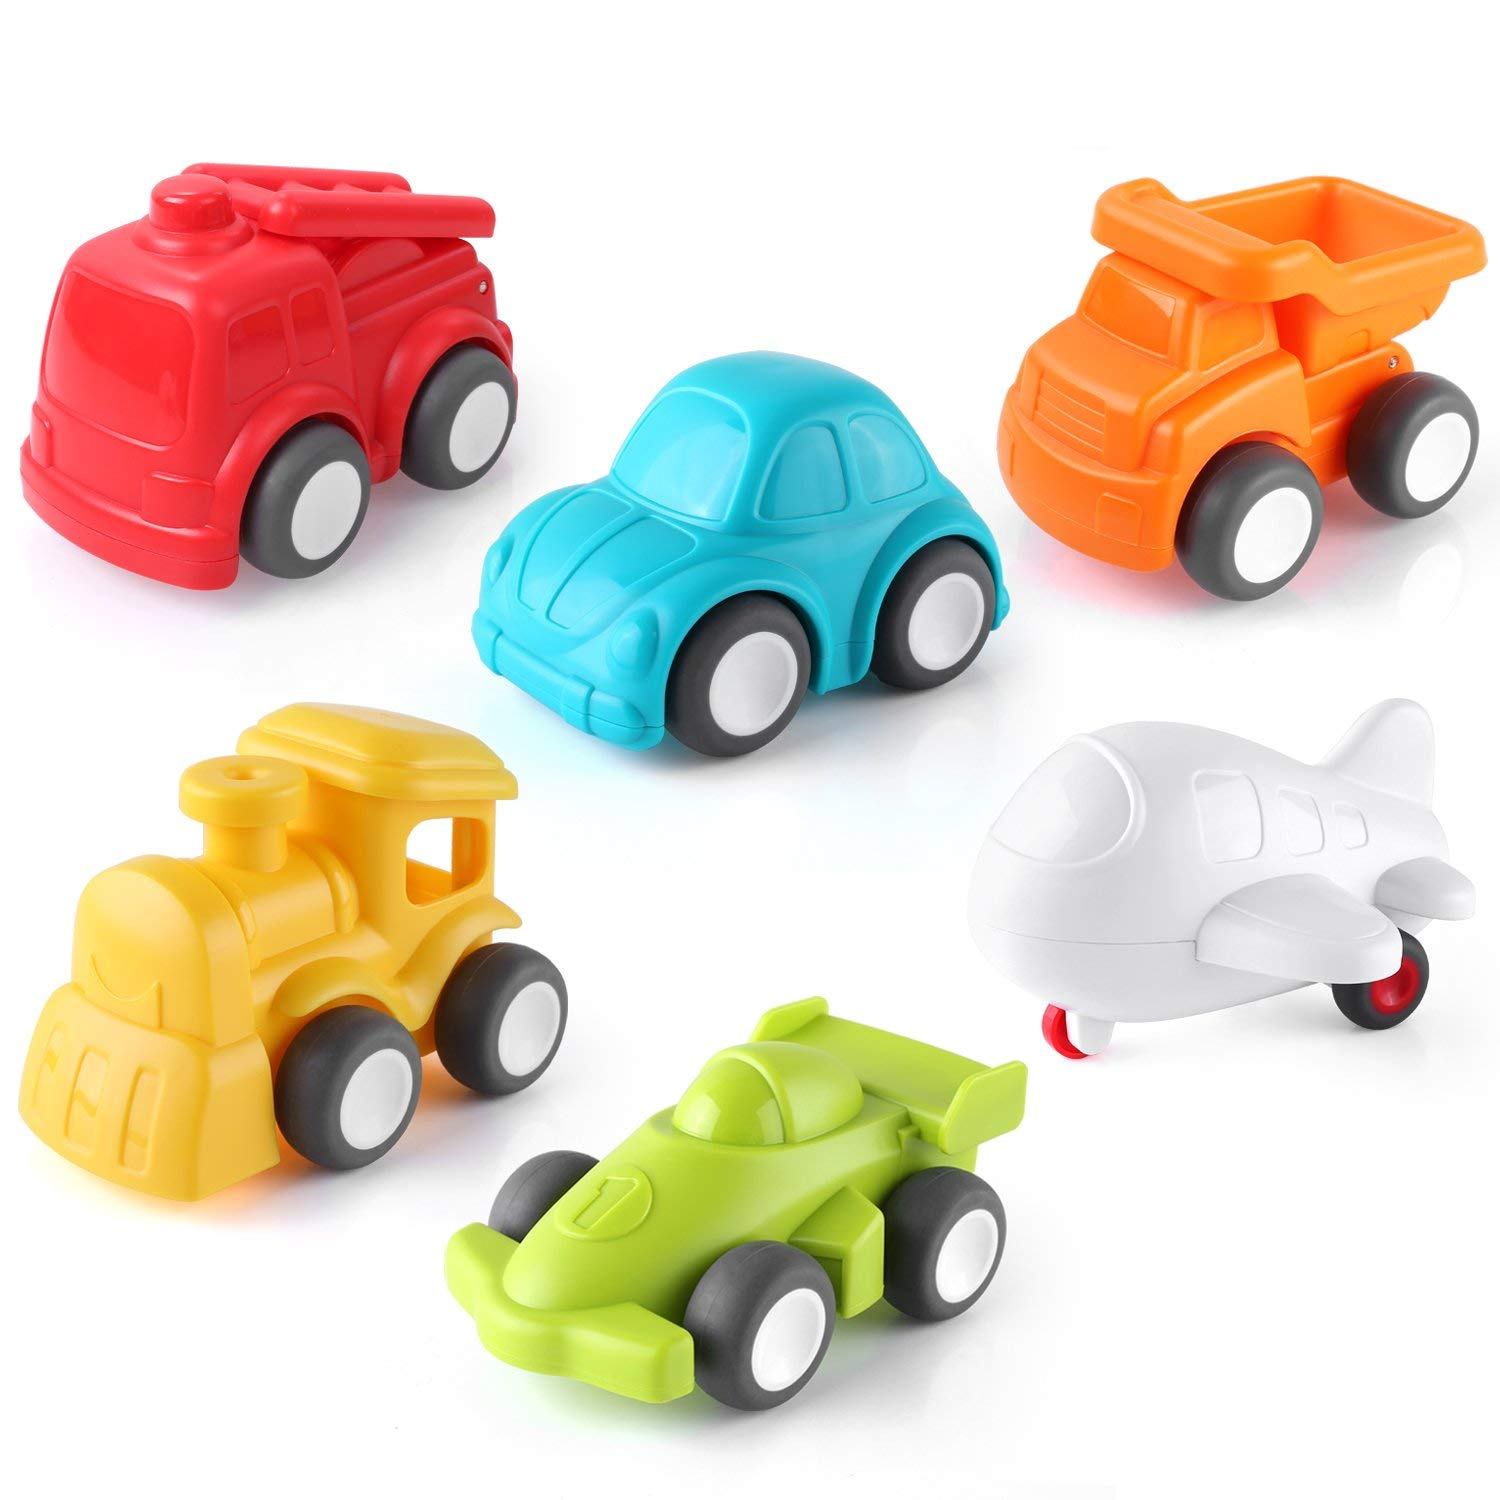 Pedy Car Toys, 6 Pack Toddler Toys Vehicles, Push and Go Cars Vehicles, Baby Toy Car for 6 to 12 Months Boys & Girls